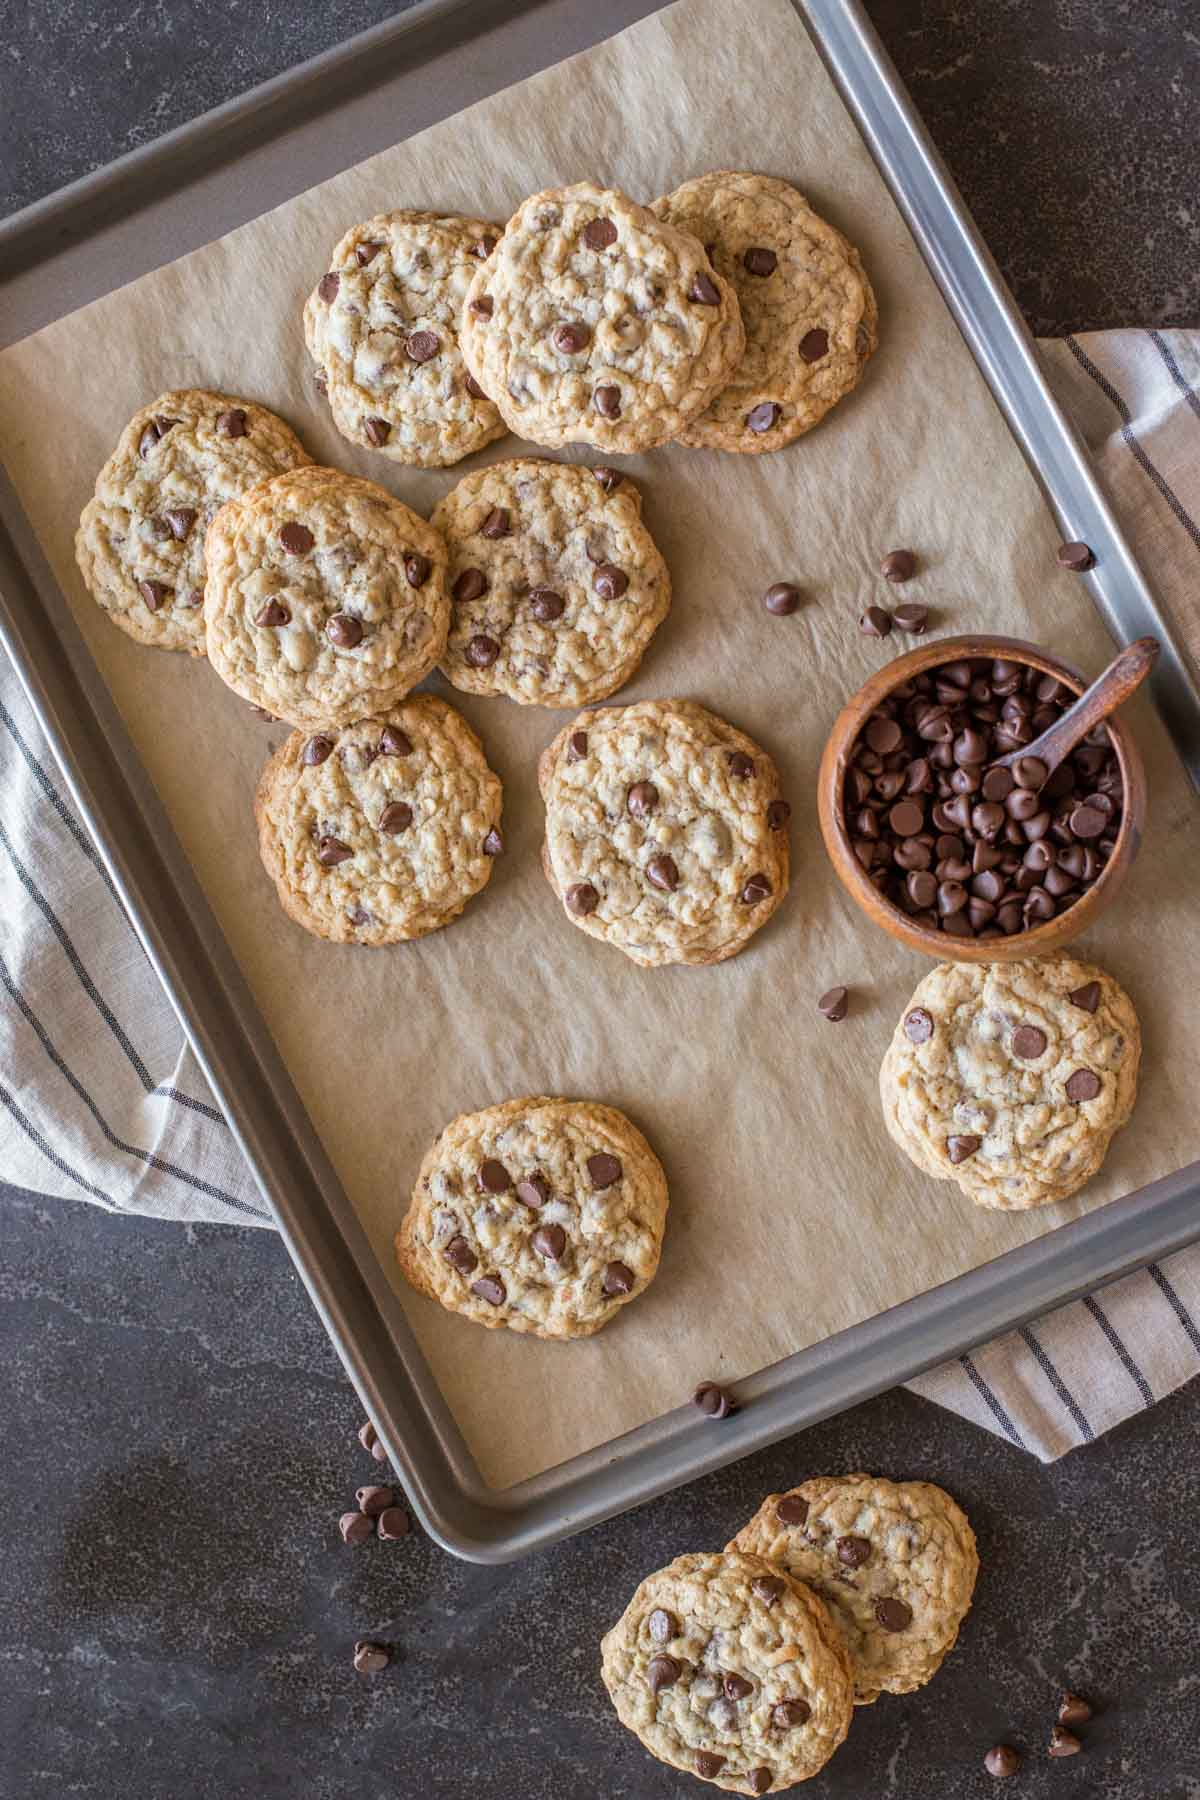 Bakery Style Oatmeal Chocolate Chip Cookies on a parchment paper lined baking sheet, along with a small wood bowl of chocolate chips, and two cookies sitting next to the baking sheet.